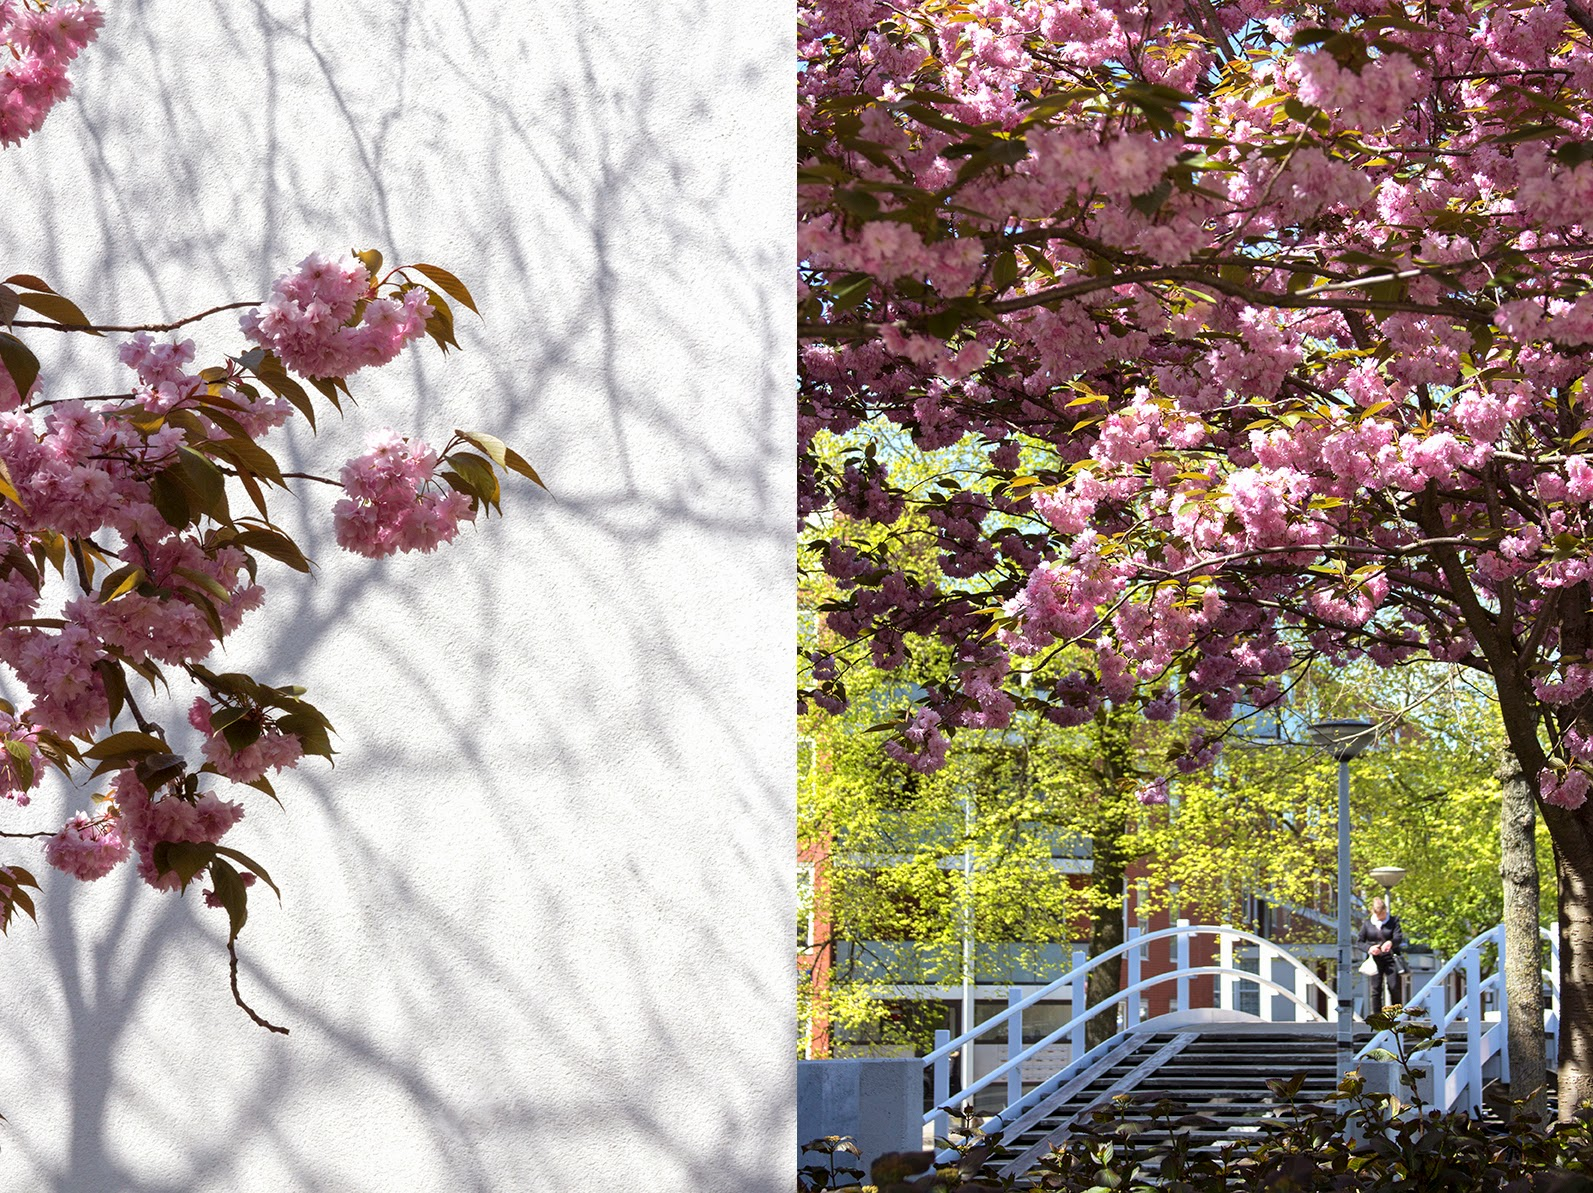 blossoms, shadows and a bridge